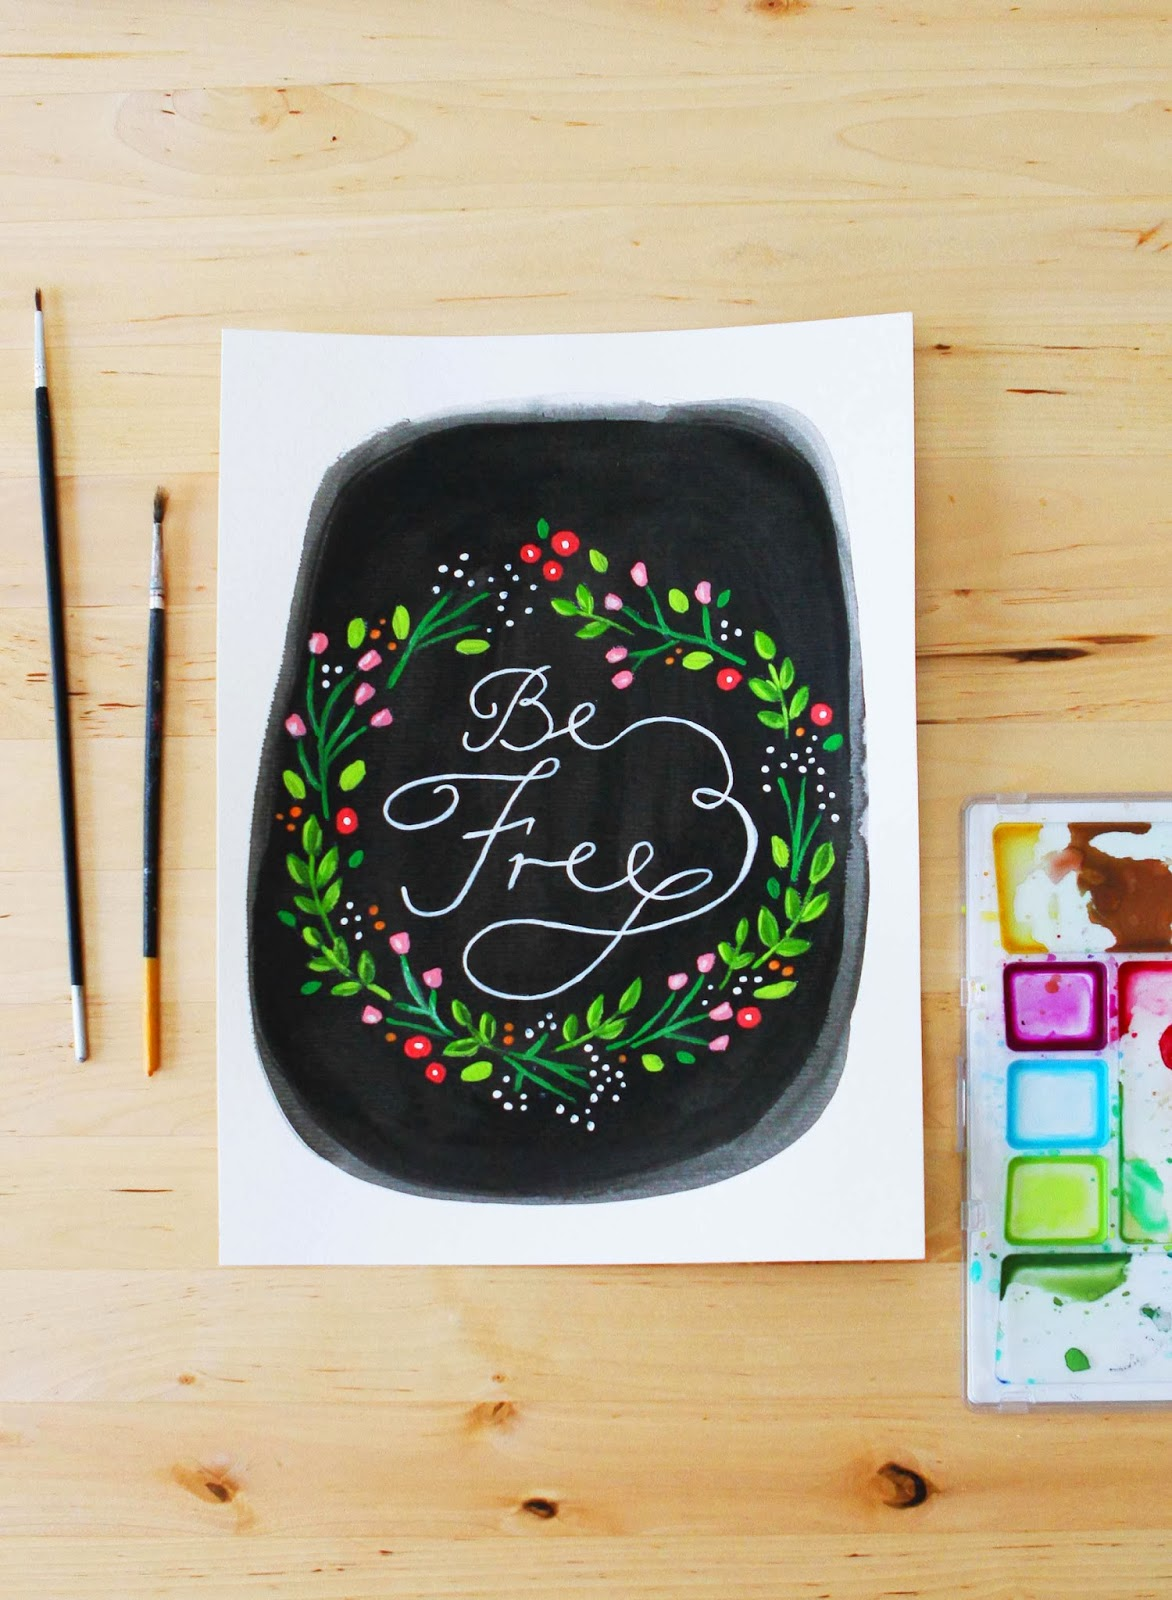 painting writing words text quote flowers floral wreath chalkboard